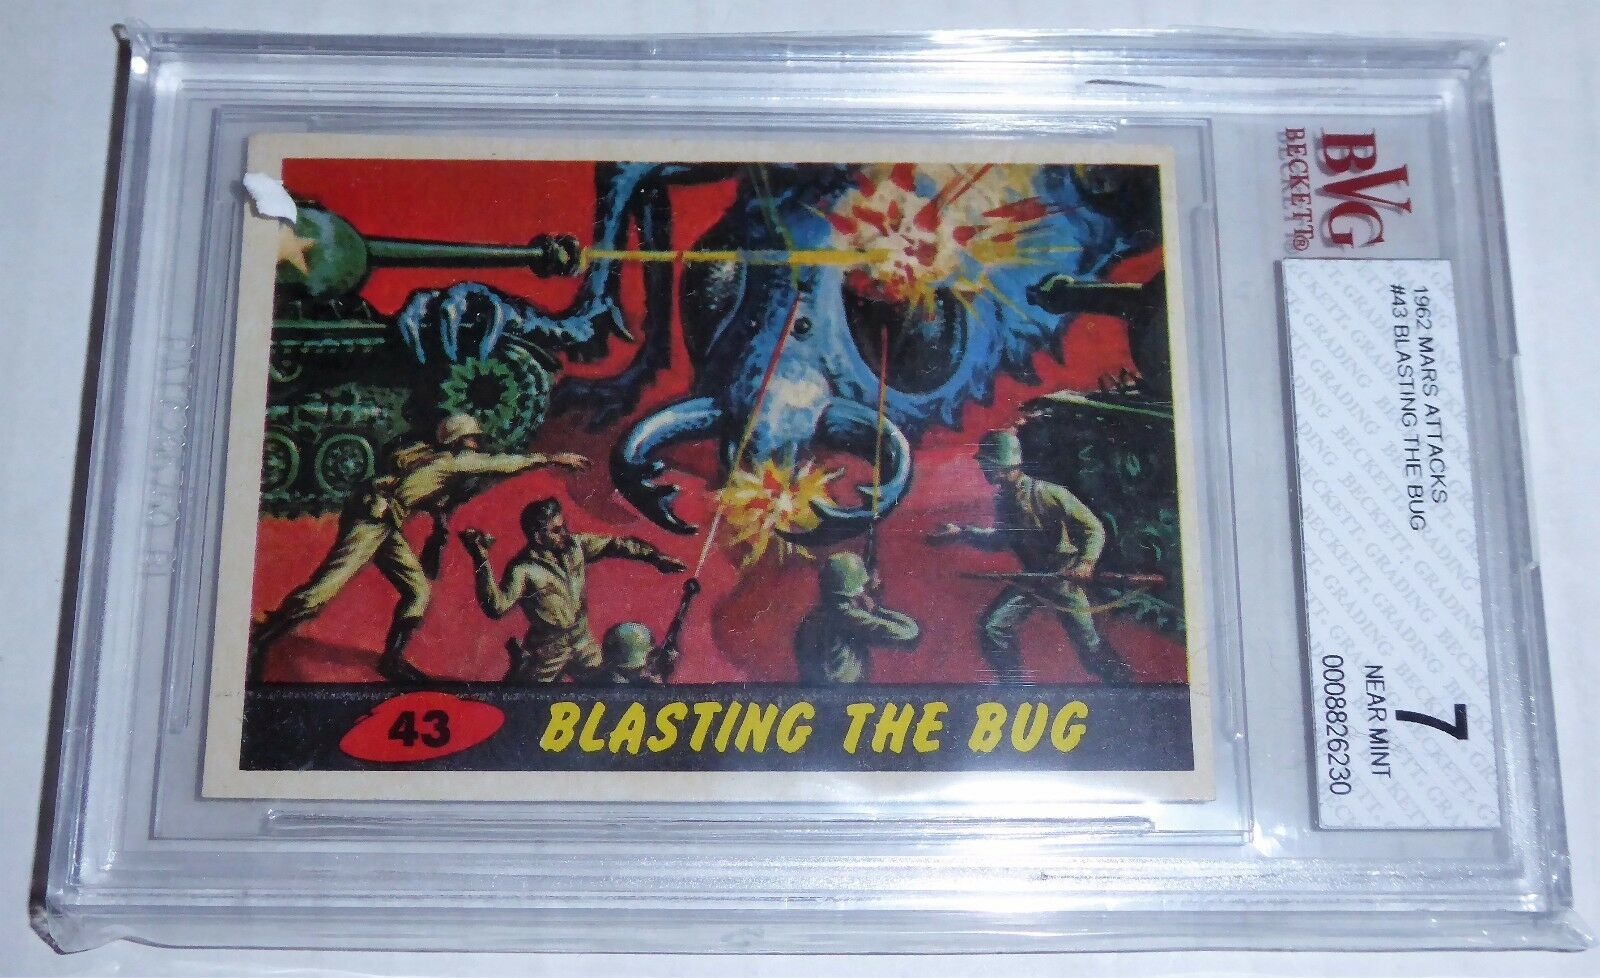 1962 Mars Attacks Blasting the Bug Card #43 BVG 7 Like PSA BGS Aliens UFO Horror